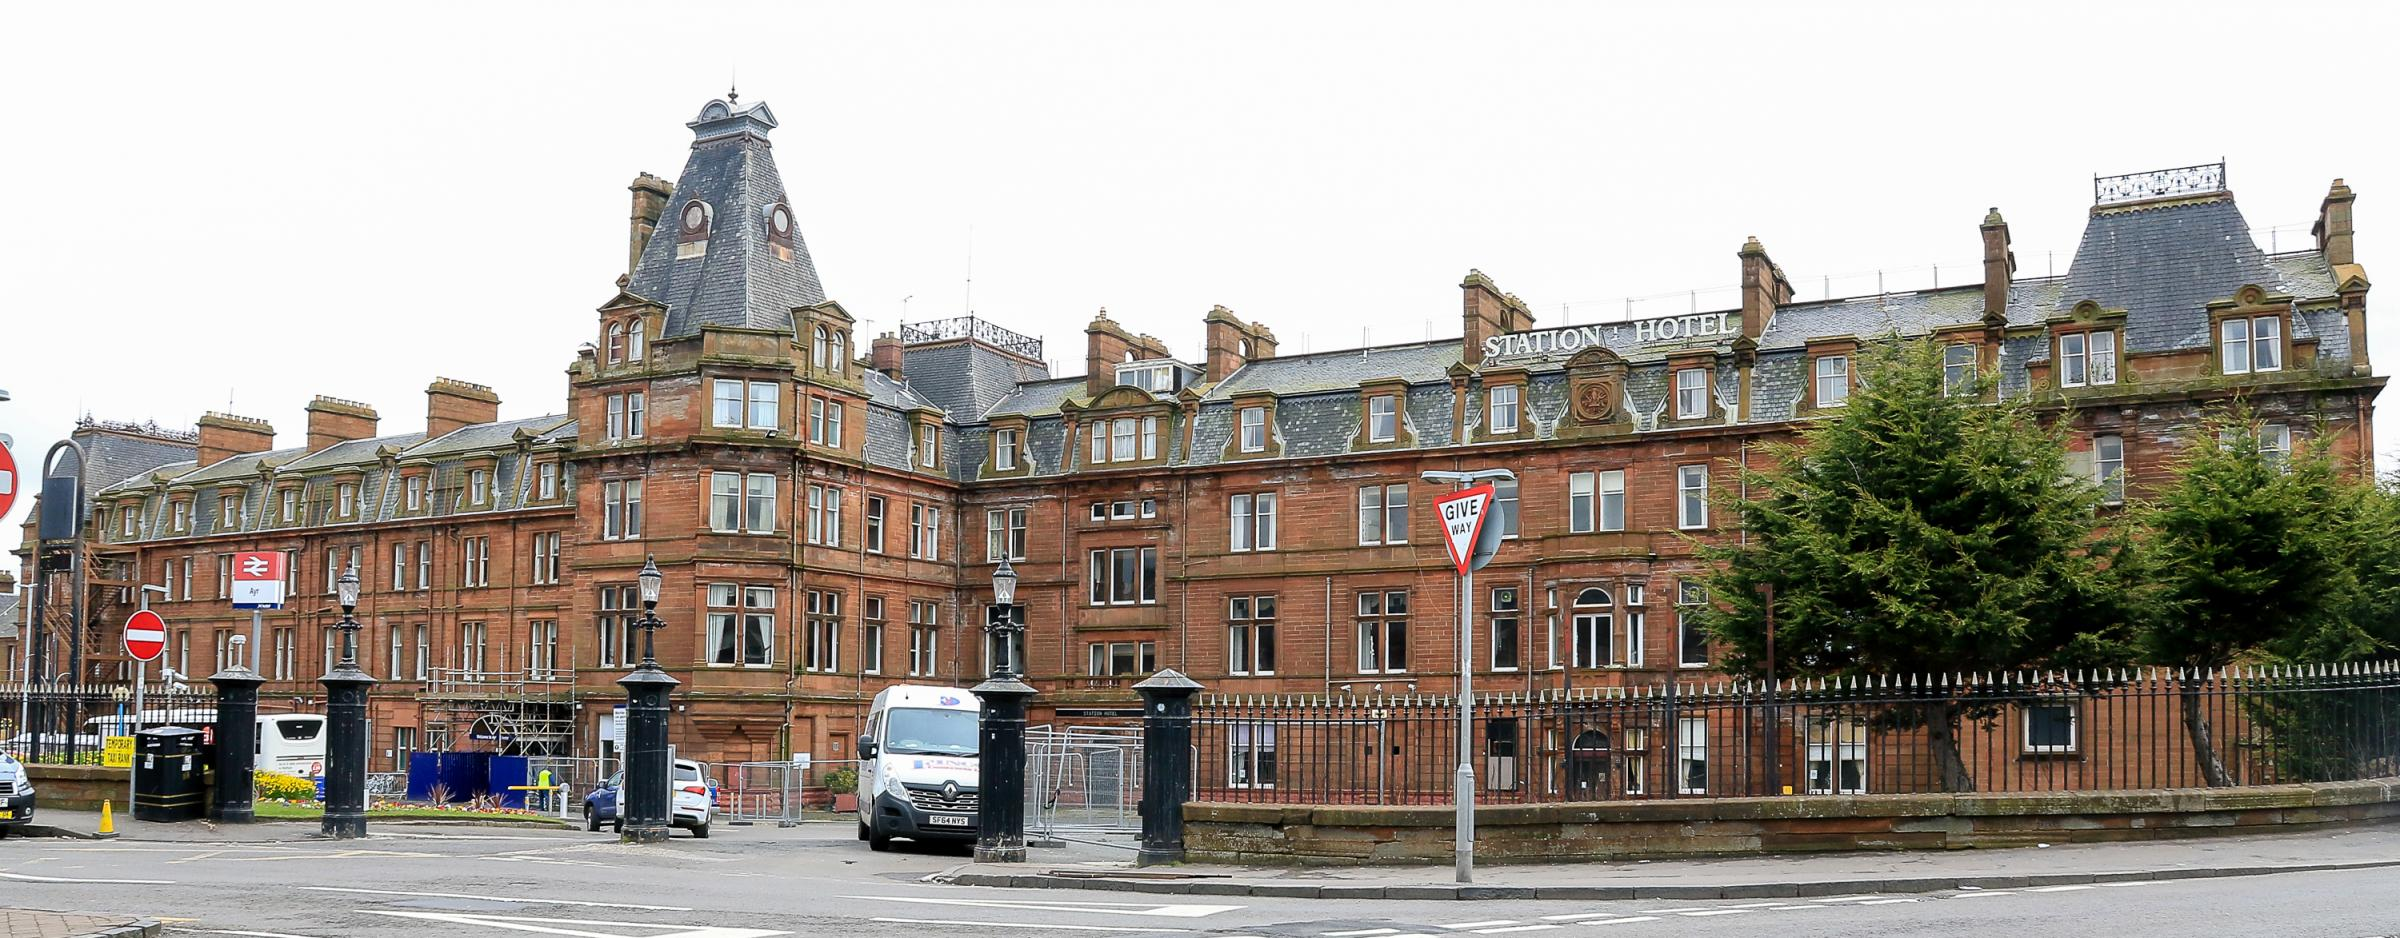 Bid to save Ayr Station Hotel